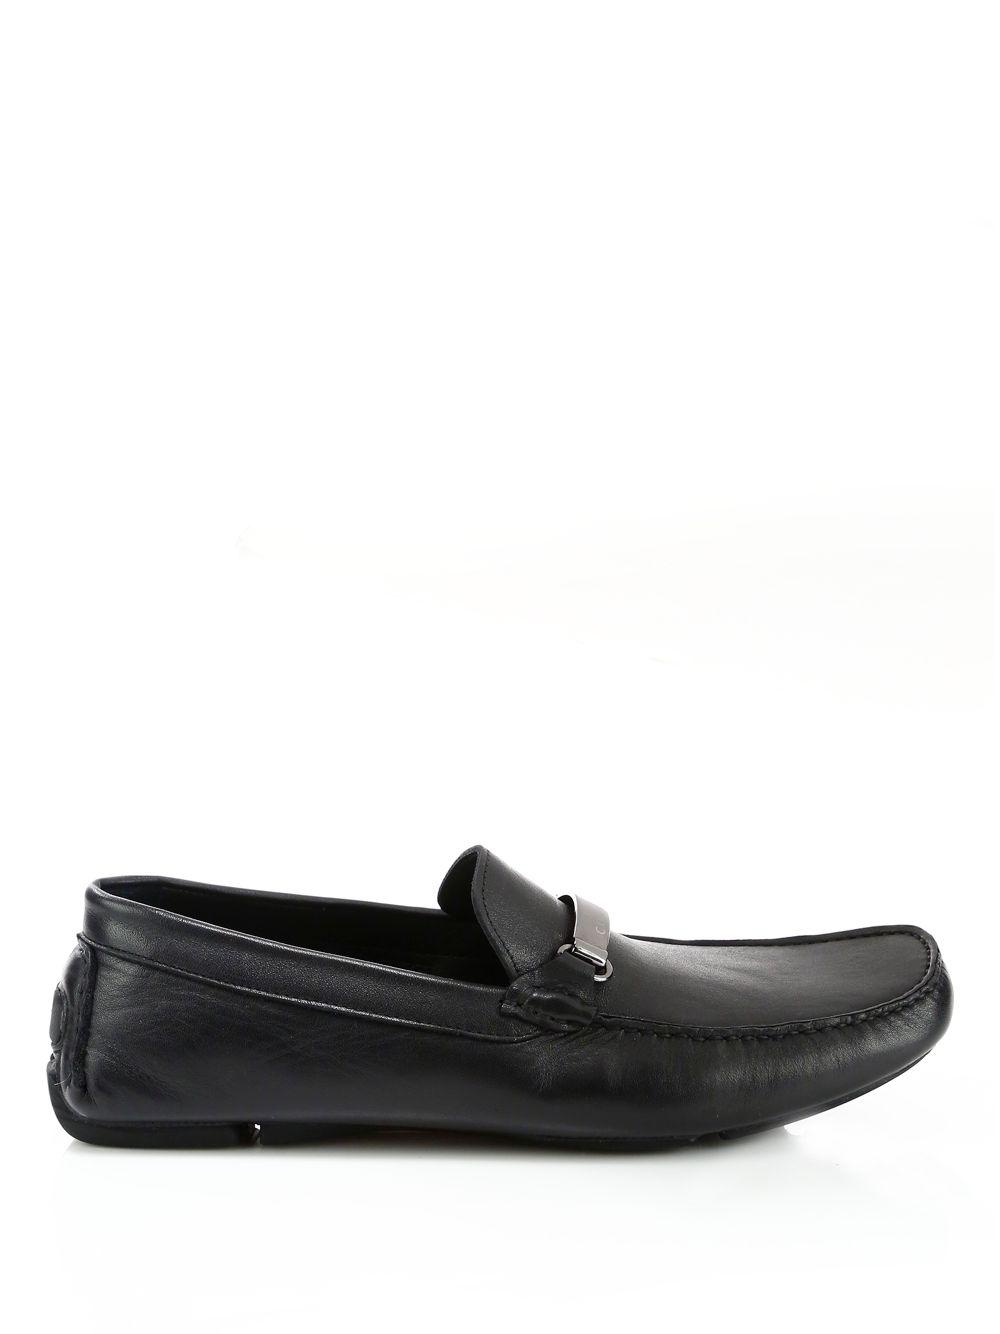 225ce13f98e Versace - Black Logo Plaque Leather Loafers for Men - Lyst. View fullscreen